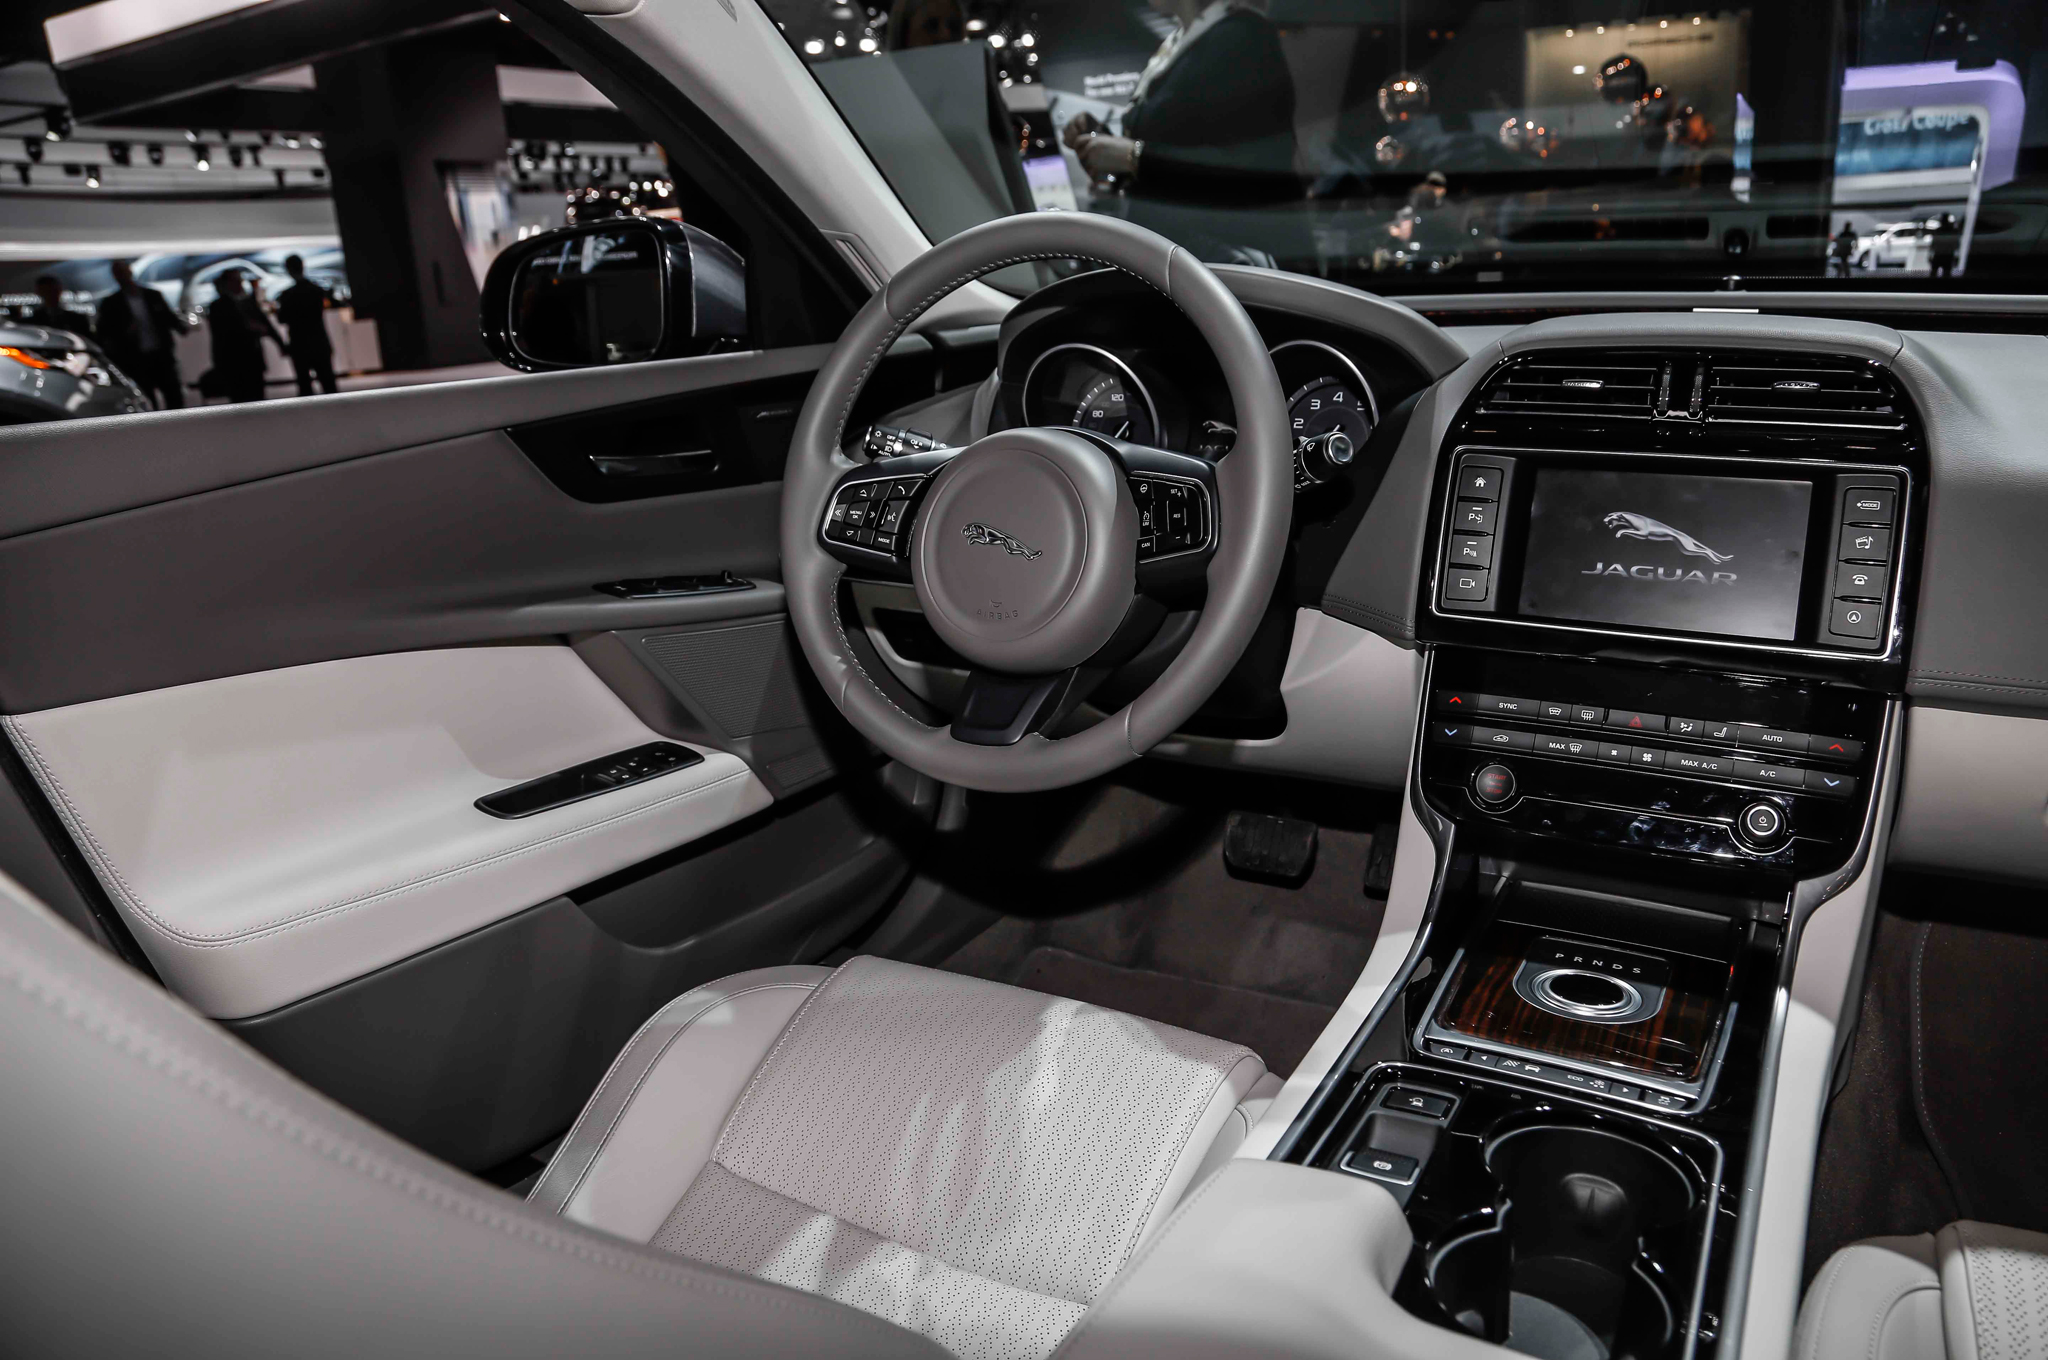 2016 Jaguar XE Dashboard and Cockpit